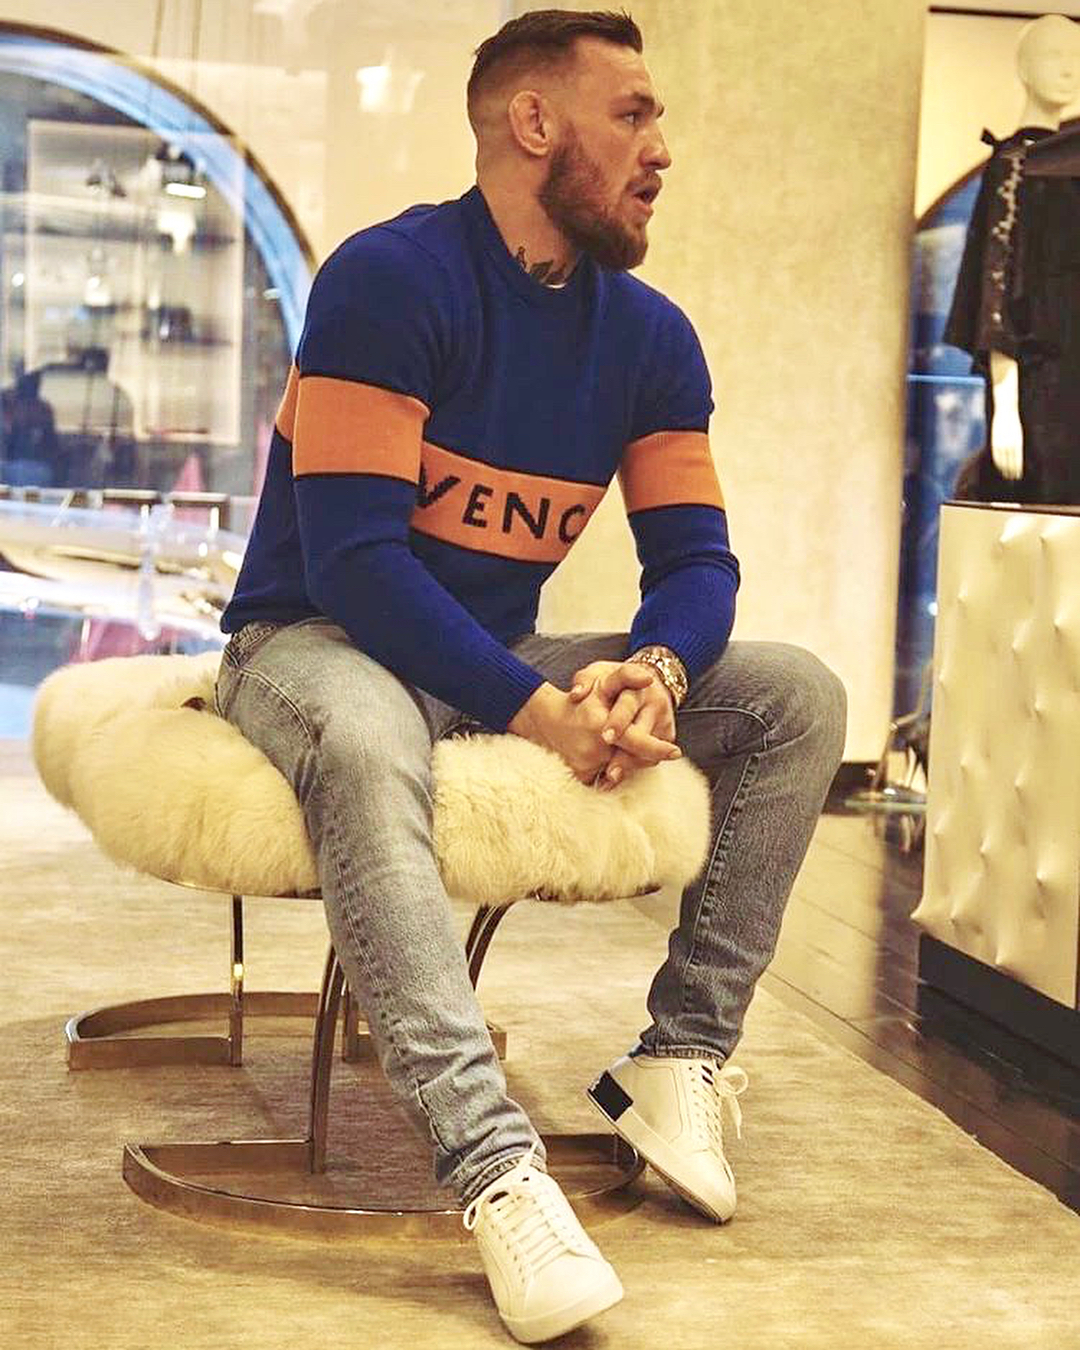 SPOTTED: Conor McGregor in Dolce & Gabbana and Givenchy